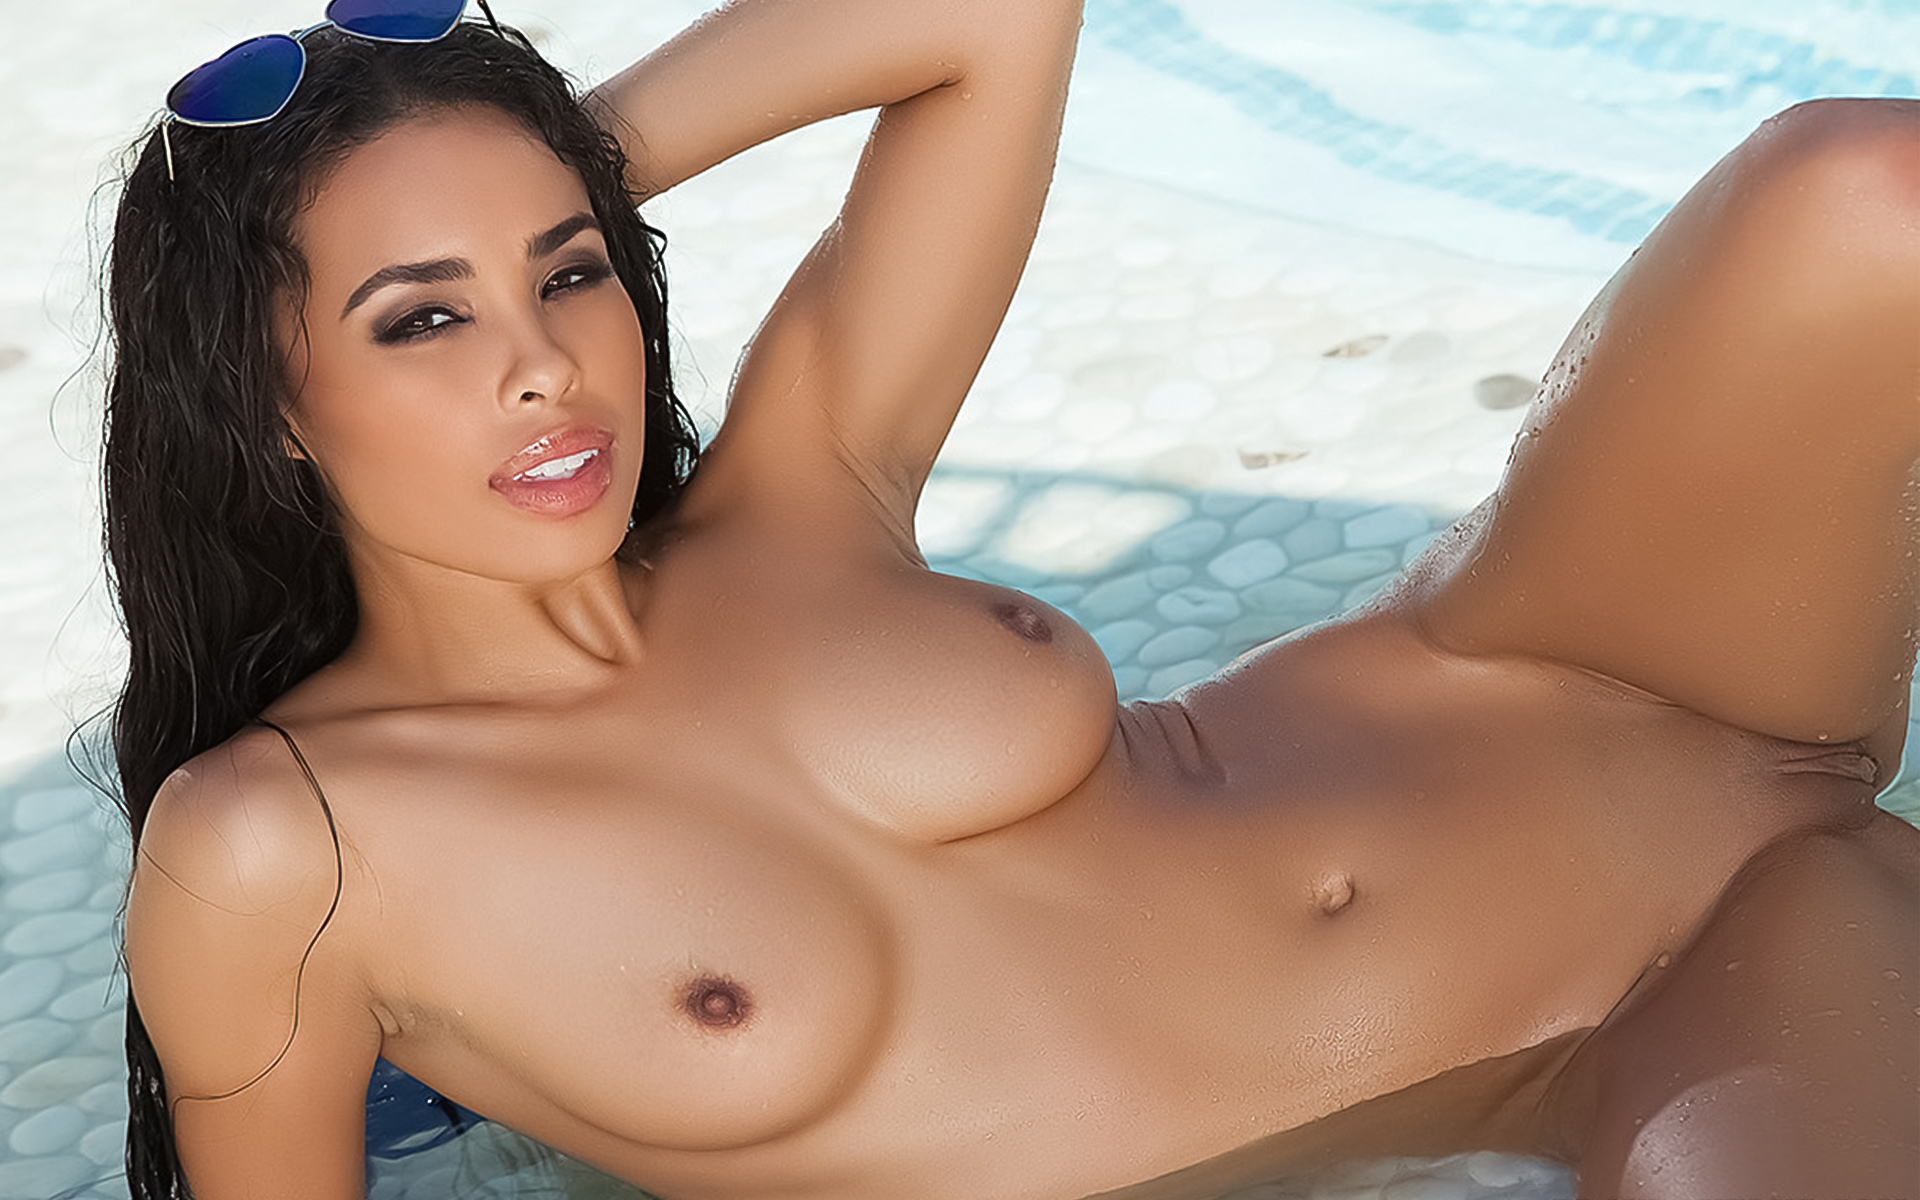 briana ashley, playboy